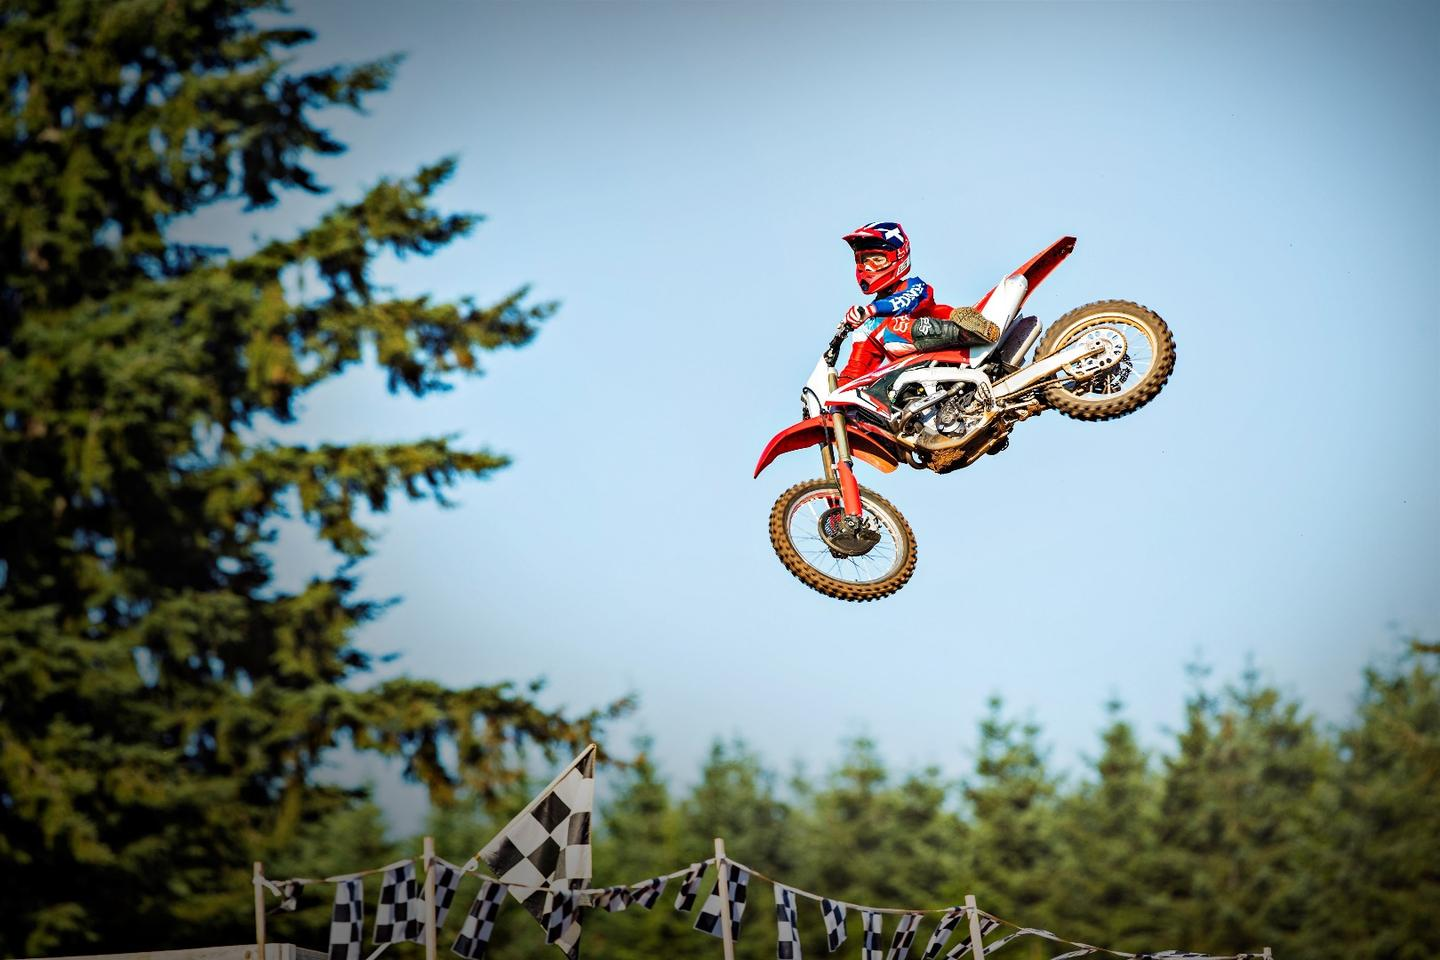 The 2018 Honda CRF250R in high-flying action